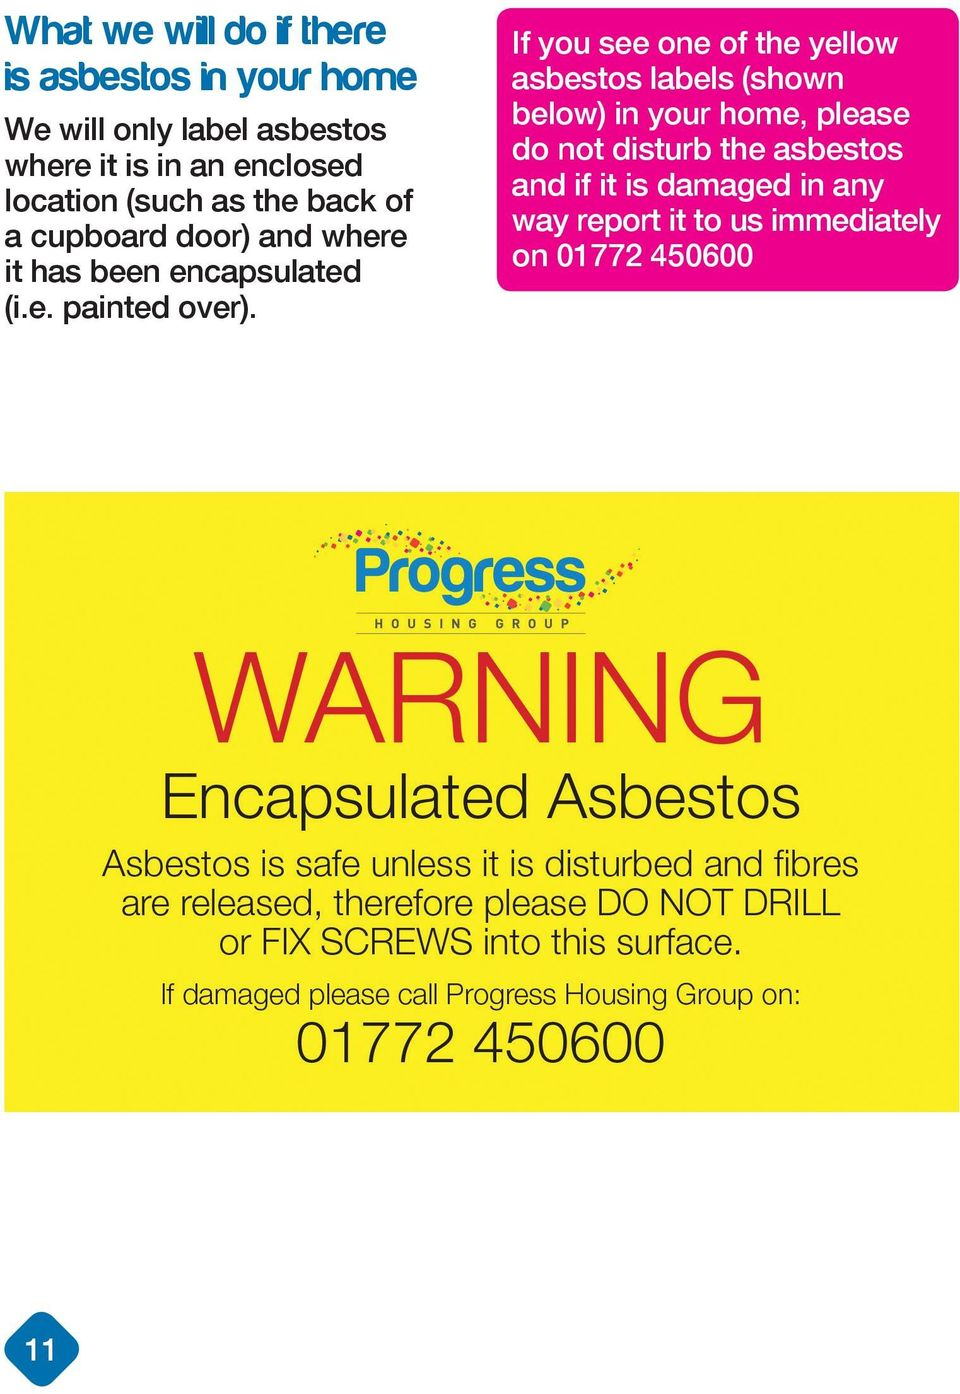 If you see one of the yellow asbestos labels (shown below) in your home, please do not disturb the